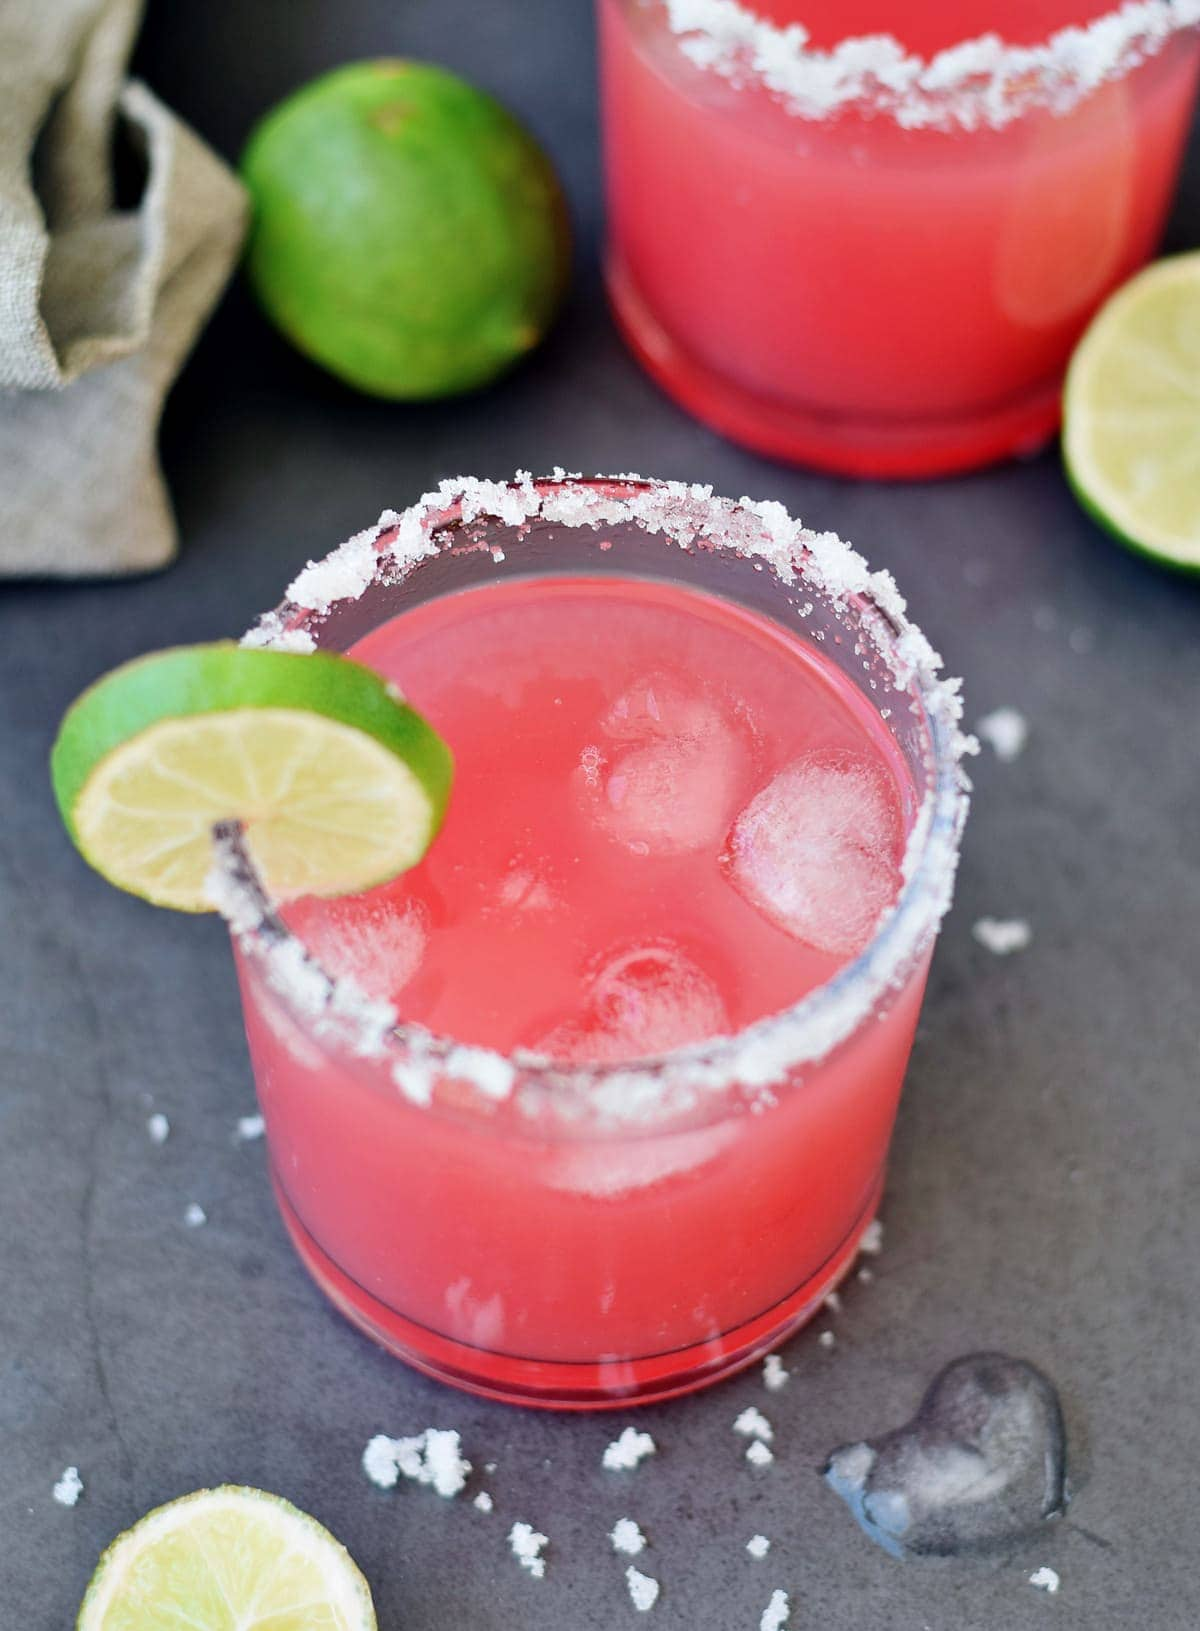 top shot of watermelon cocktail with lime and ice cubes